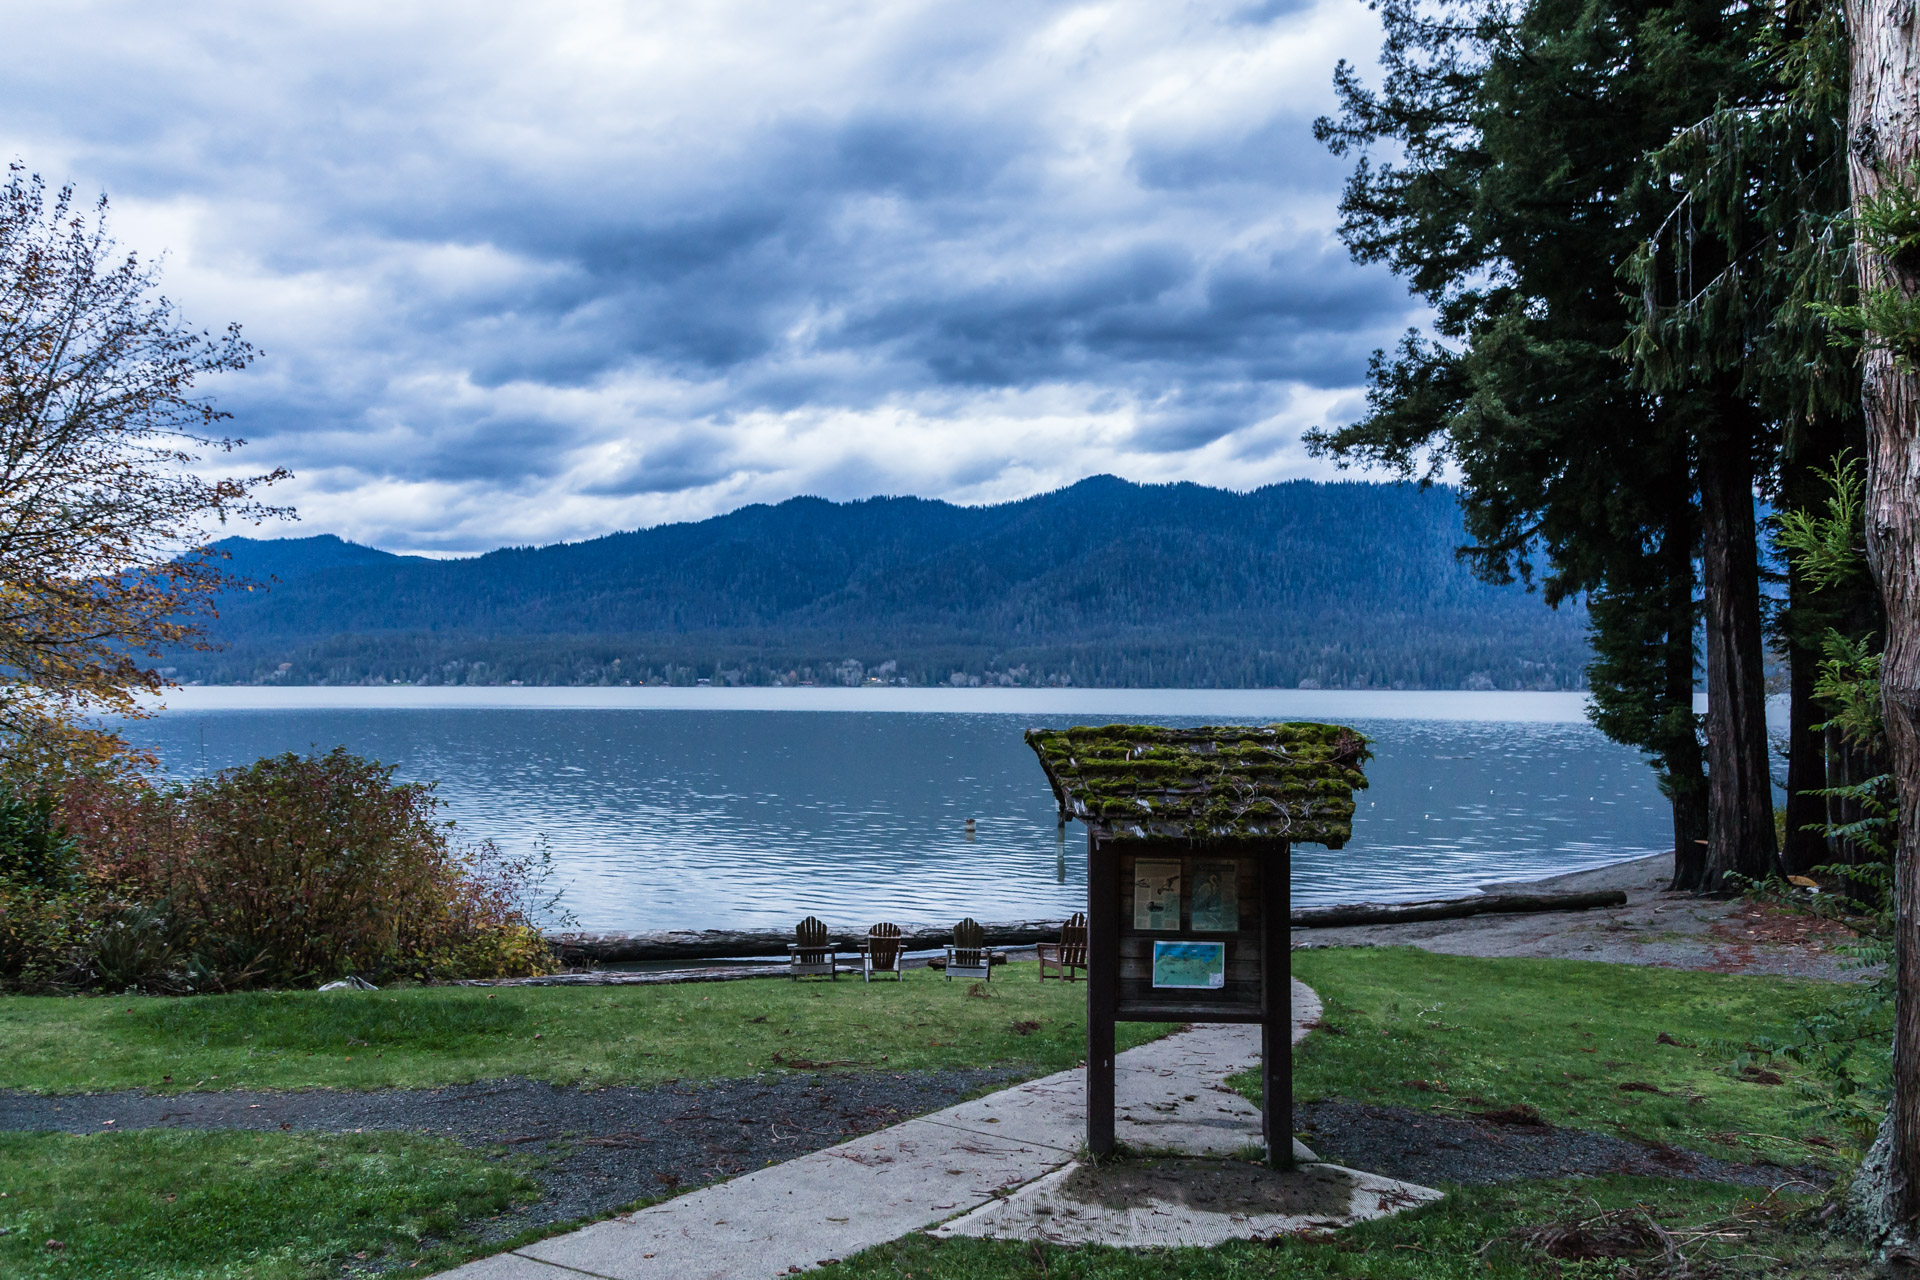 Lake Quinault (lake sign)